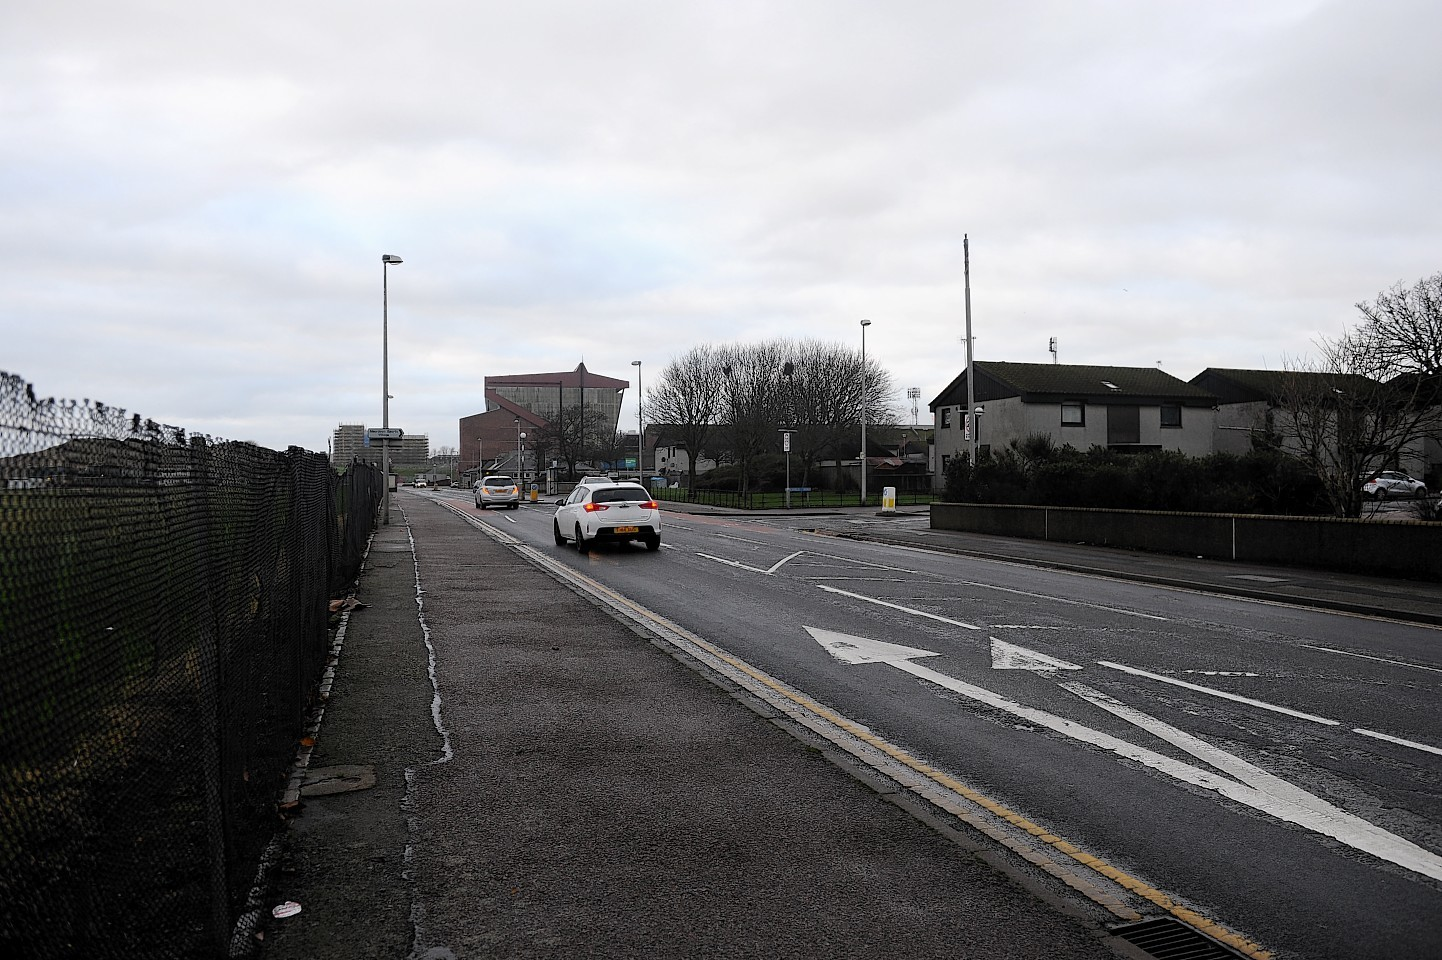 Golf Road will be shut temporarily for road resurfacing works